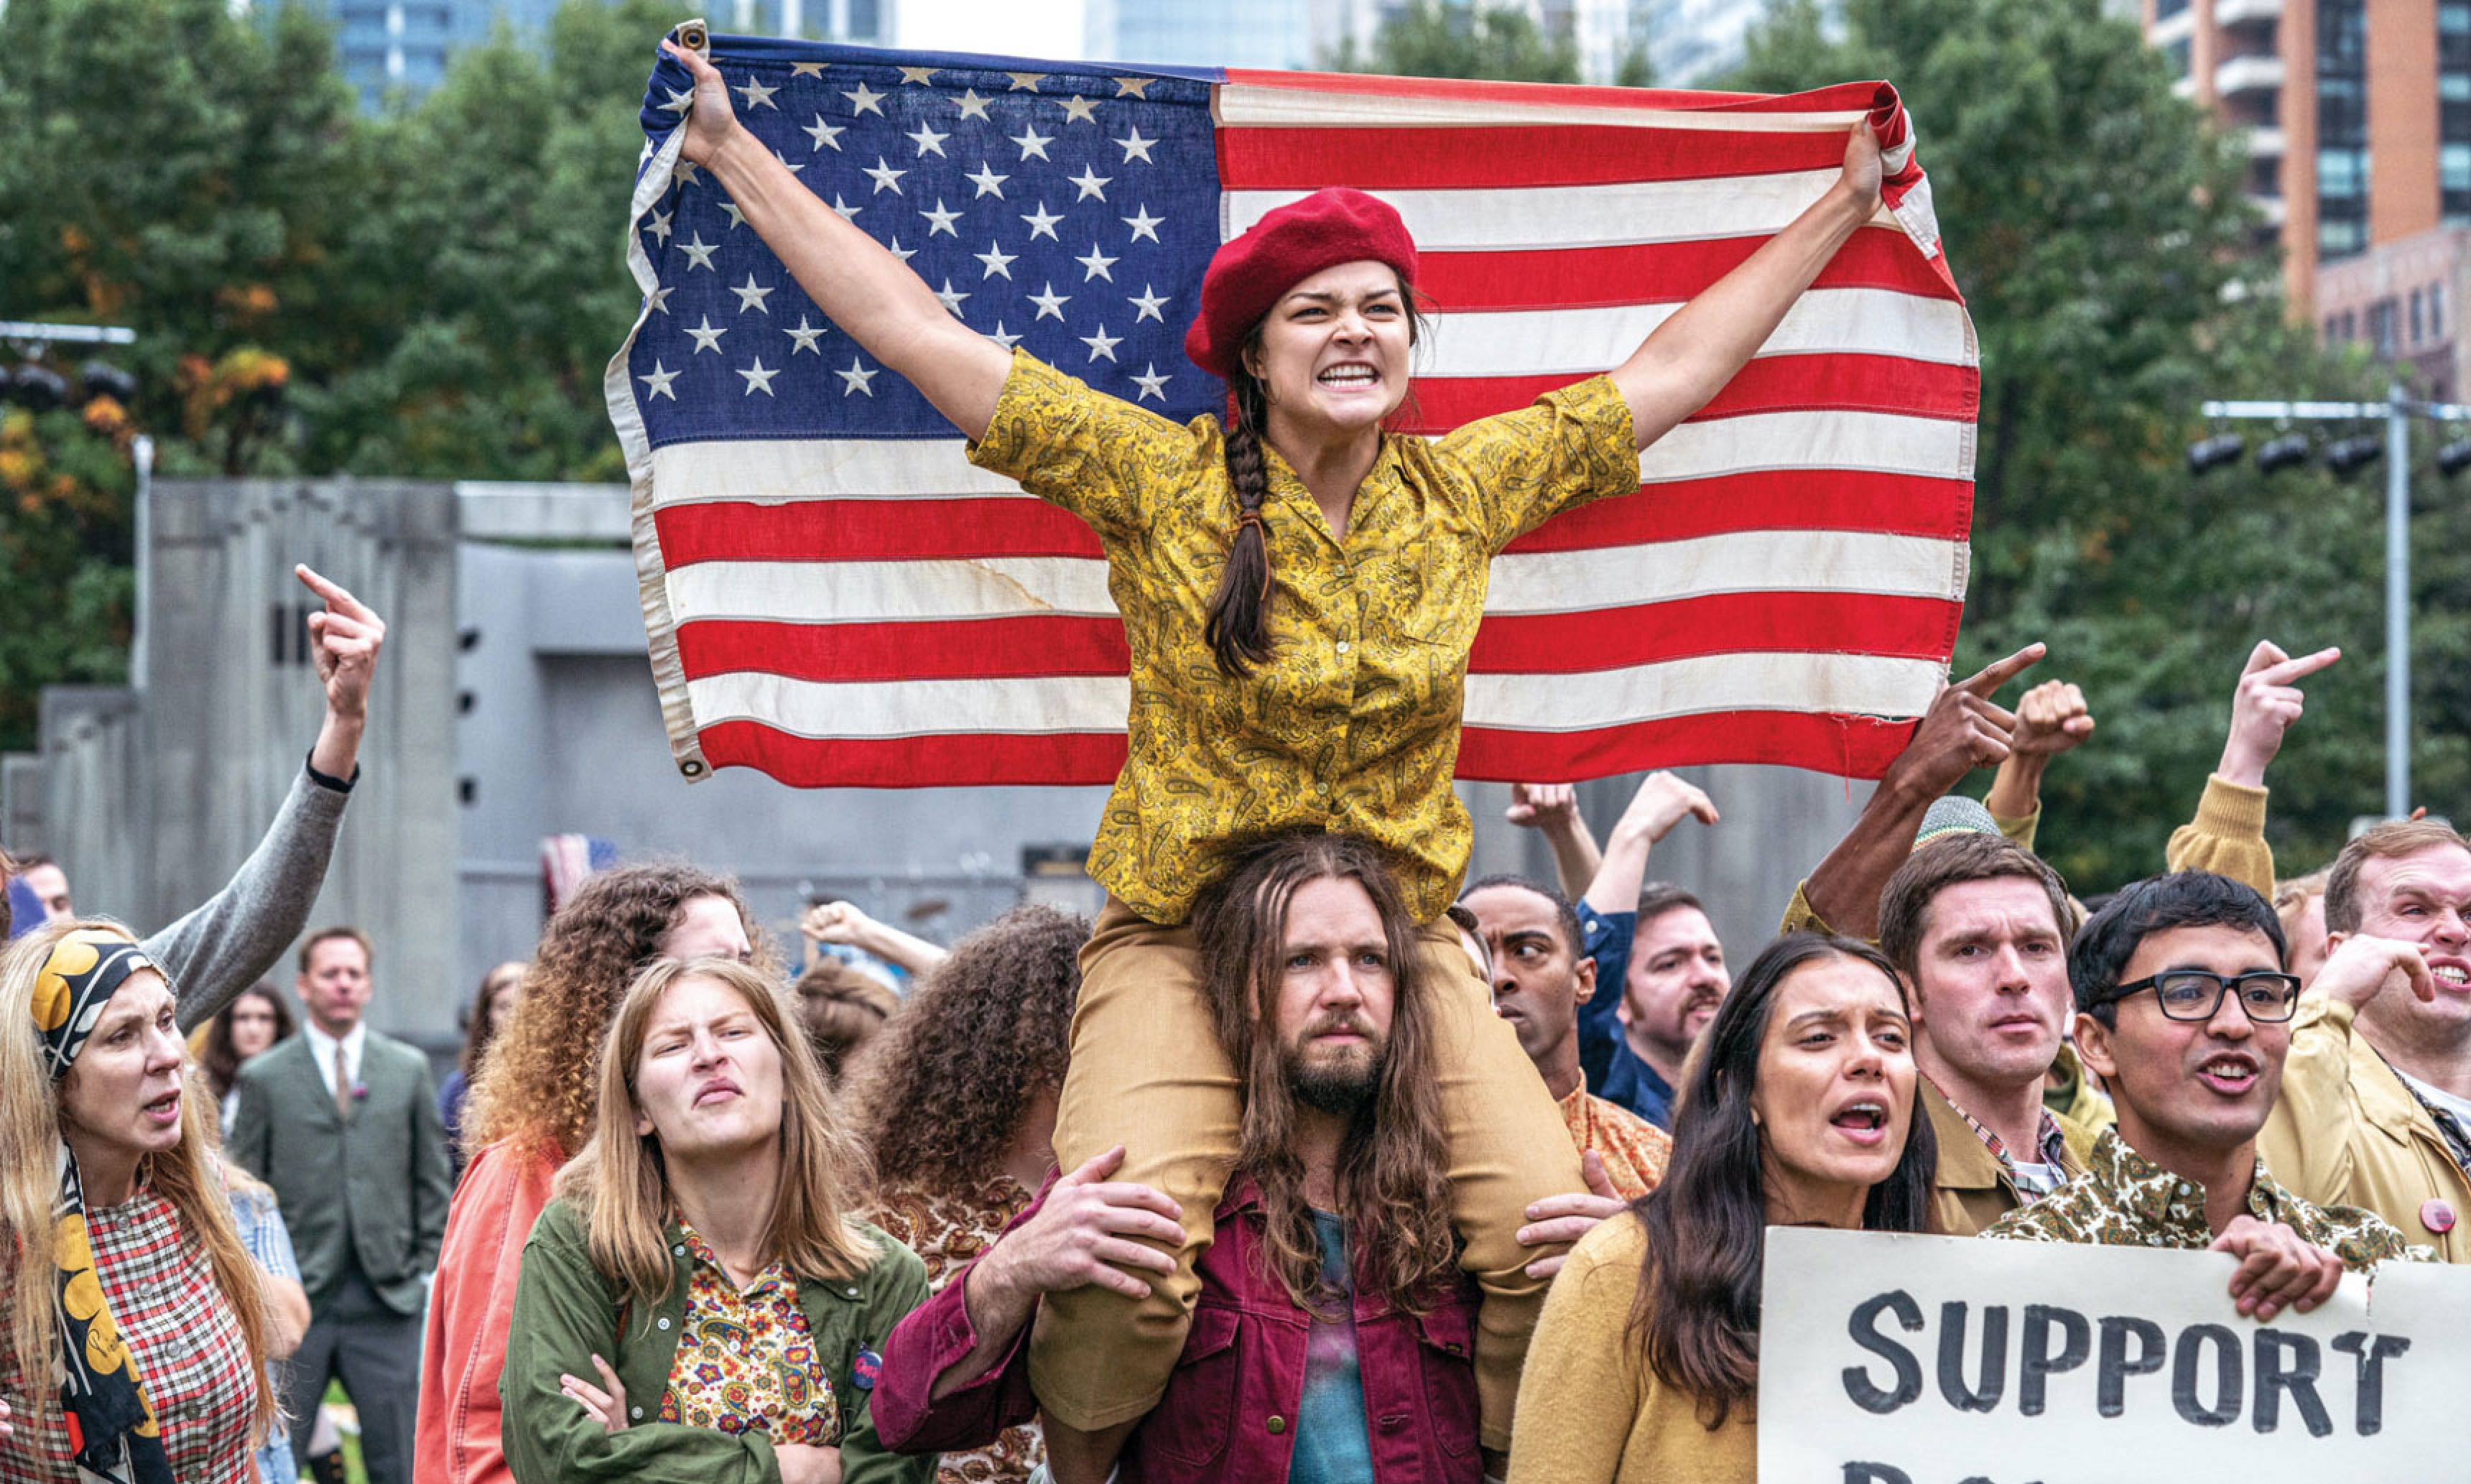 In this crowd scene, a young woman sits on a long-haired protester's shoulders, wearing a red beret and holding an American flag outstretched.